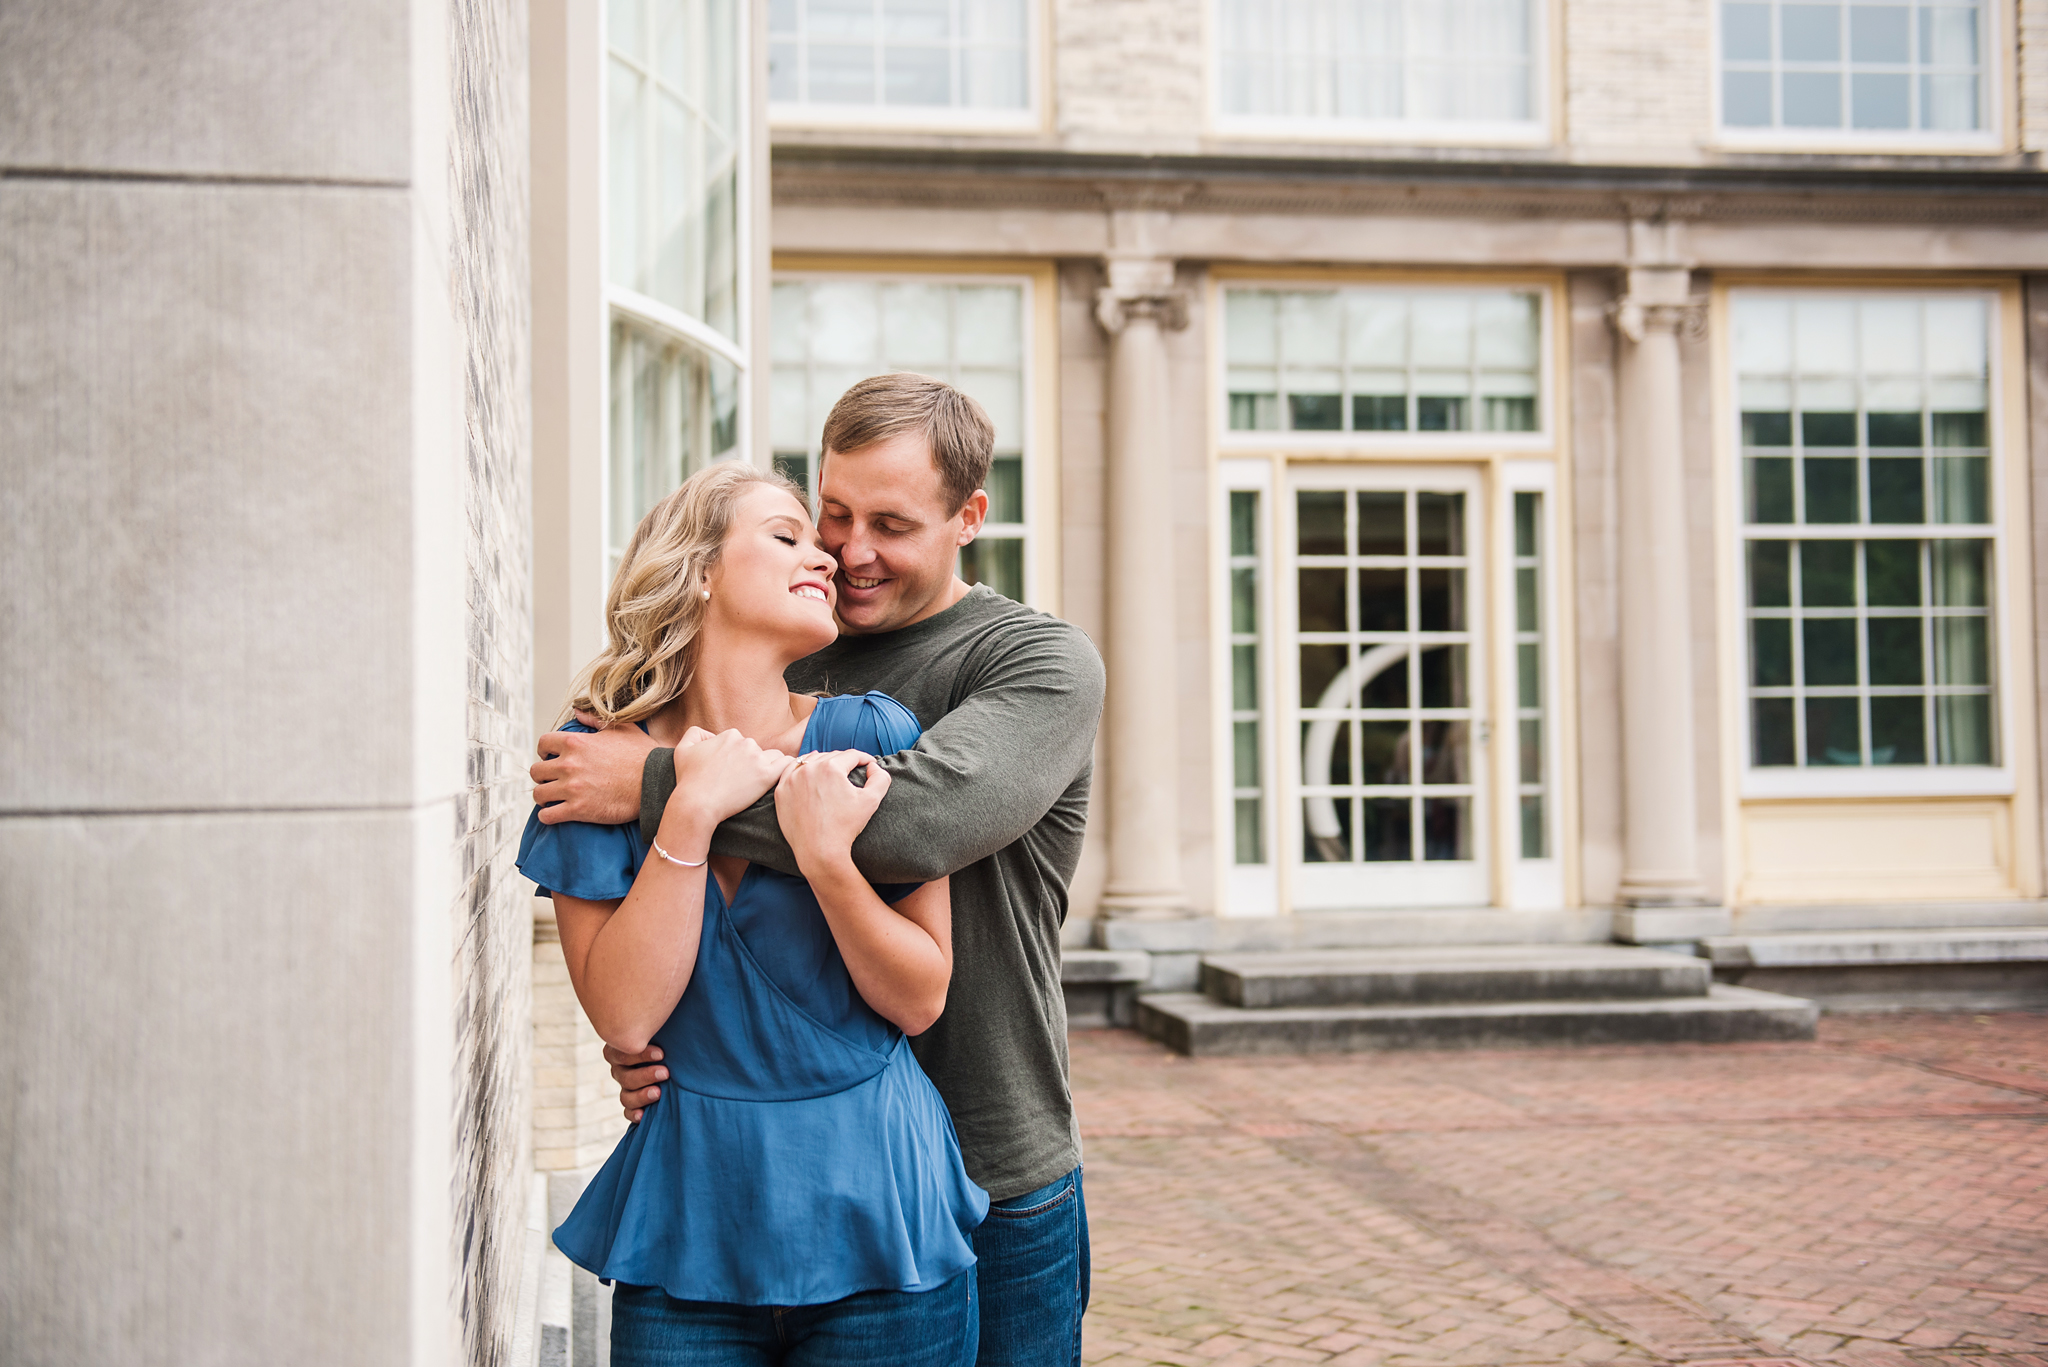 George_Eastman_House_Rochester_Yacht_Club_Rochester_Engagement_Session_JILL_STUDIO_Rochester_NY_Photographer_DSC_8099.jpg